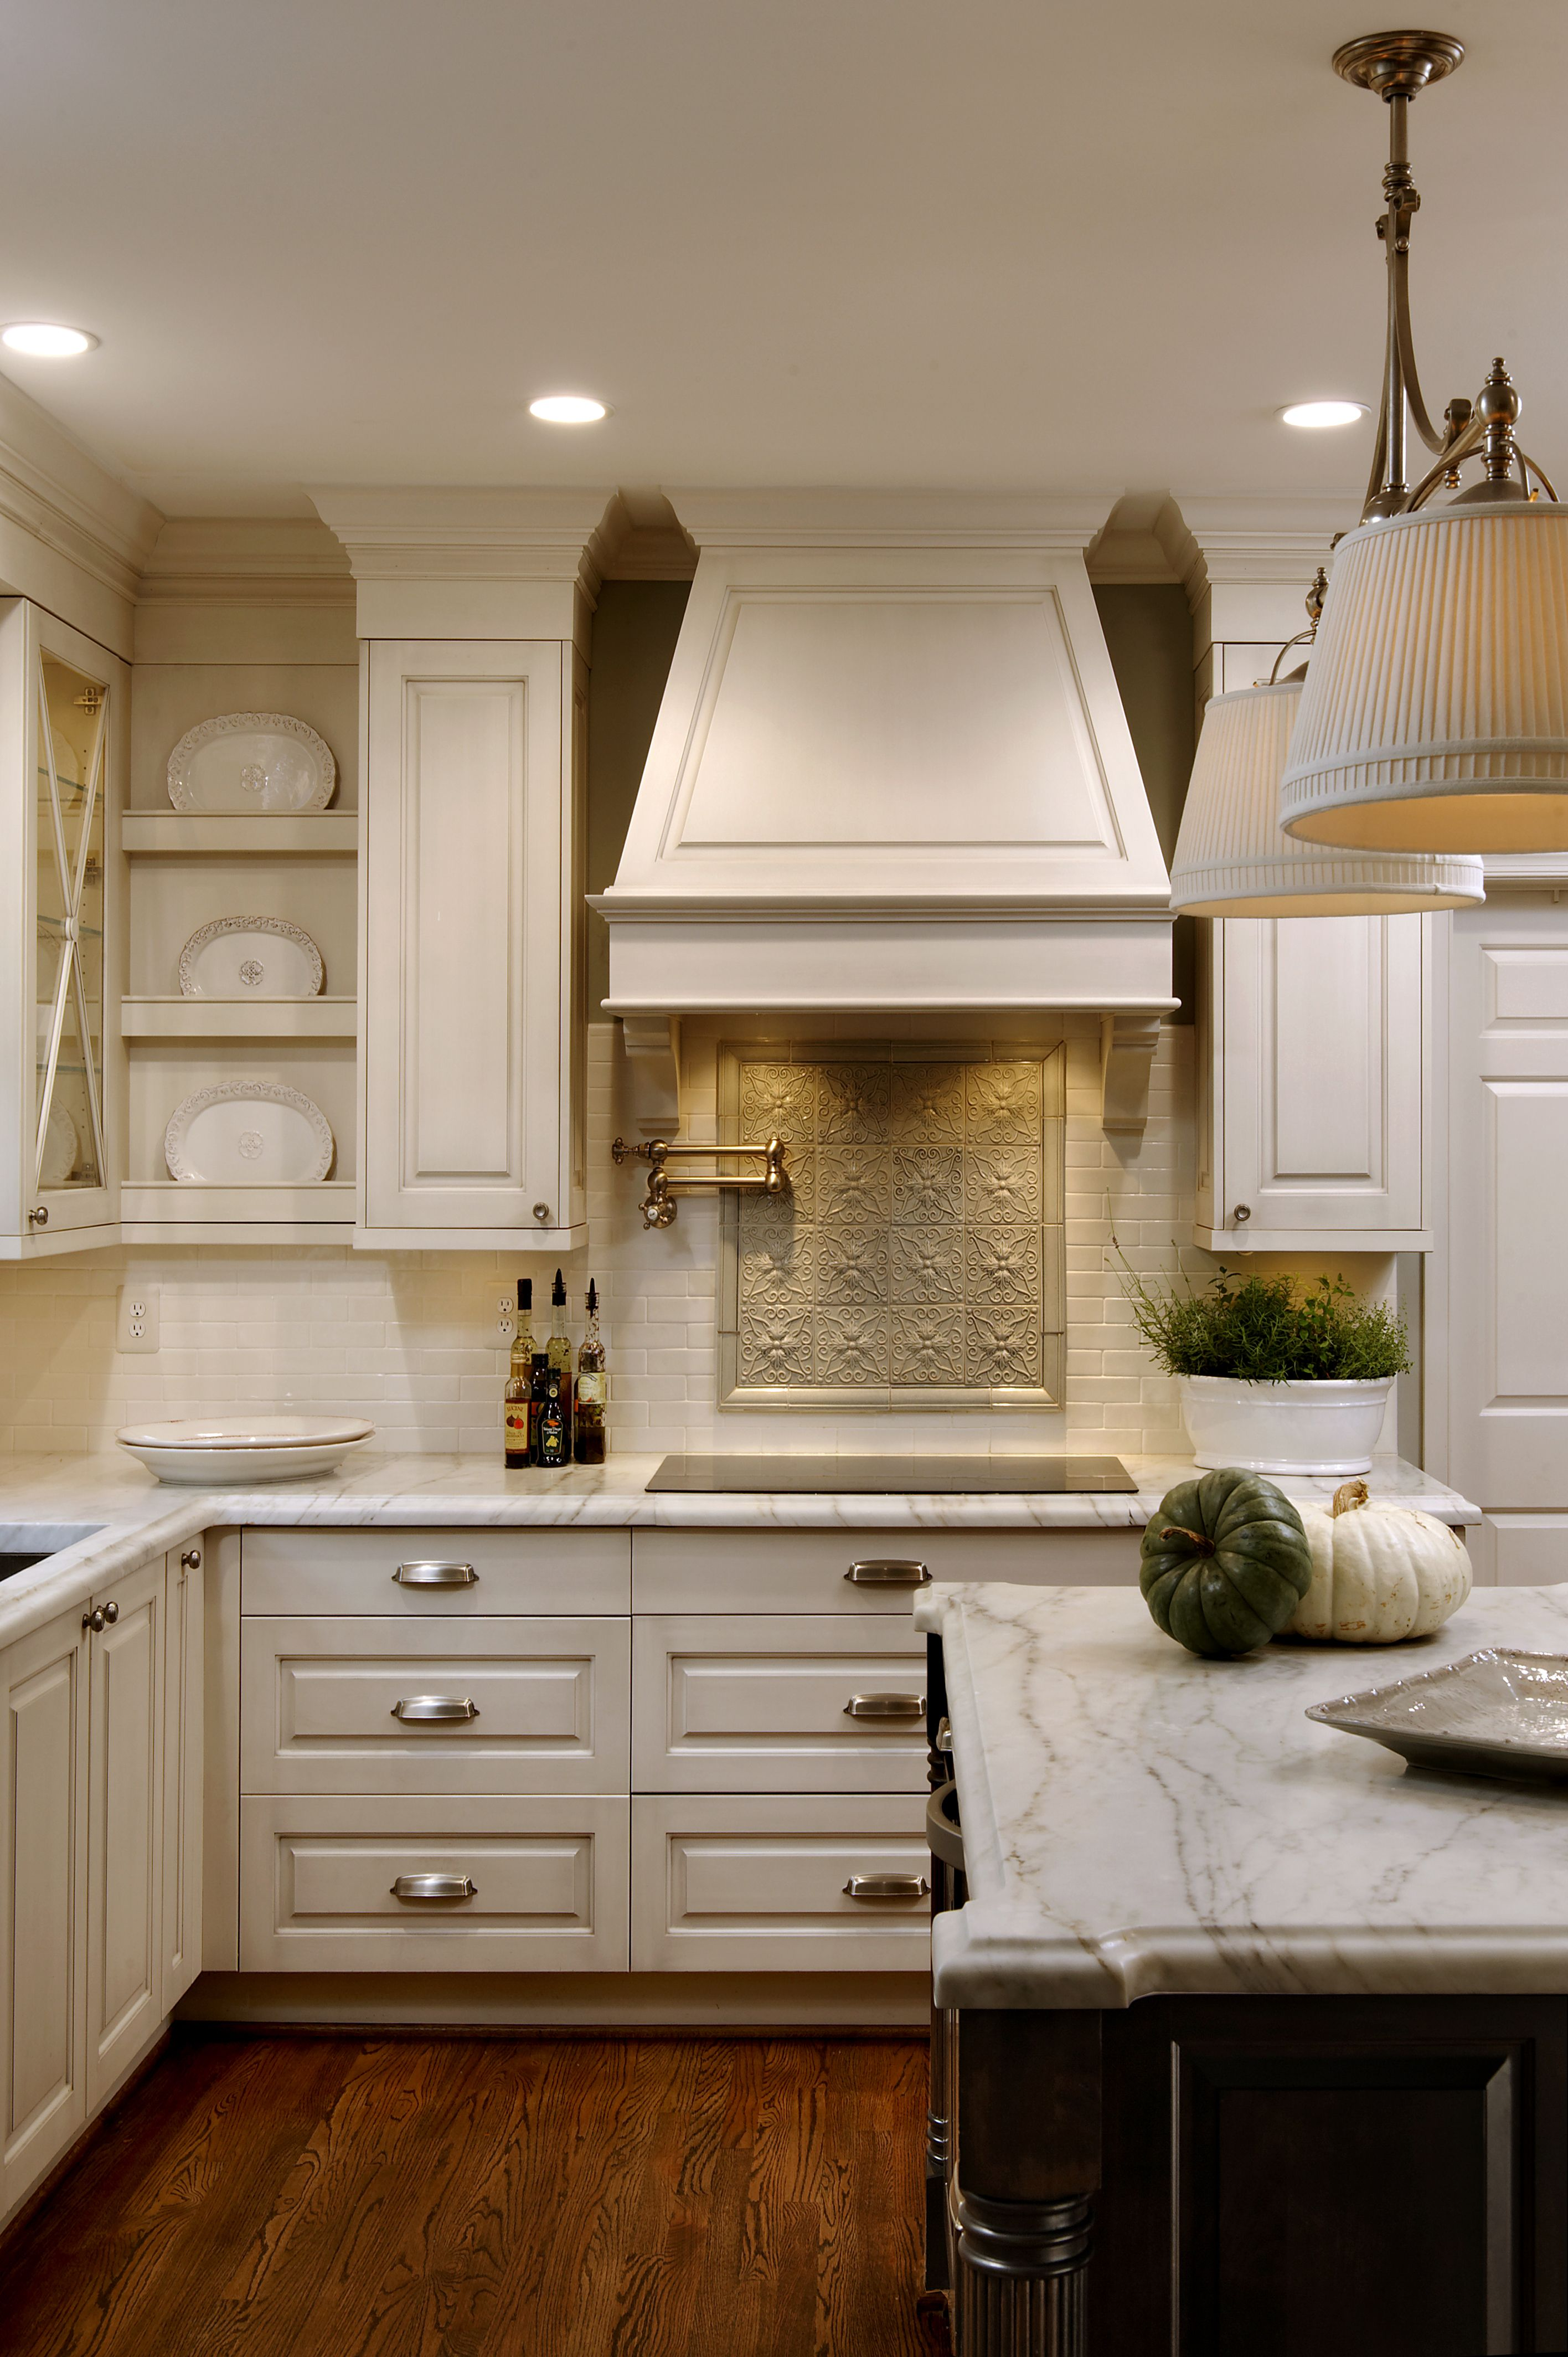 Accent Back Splash And Creamy White Cabinets